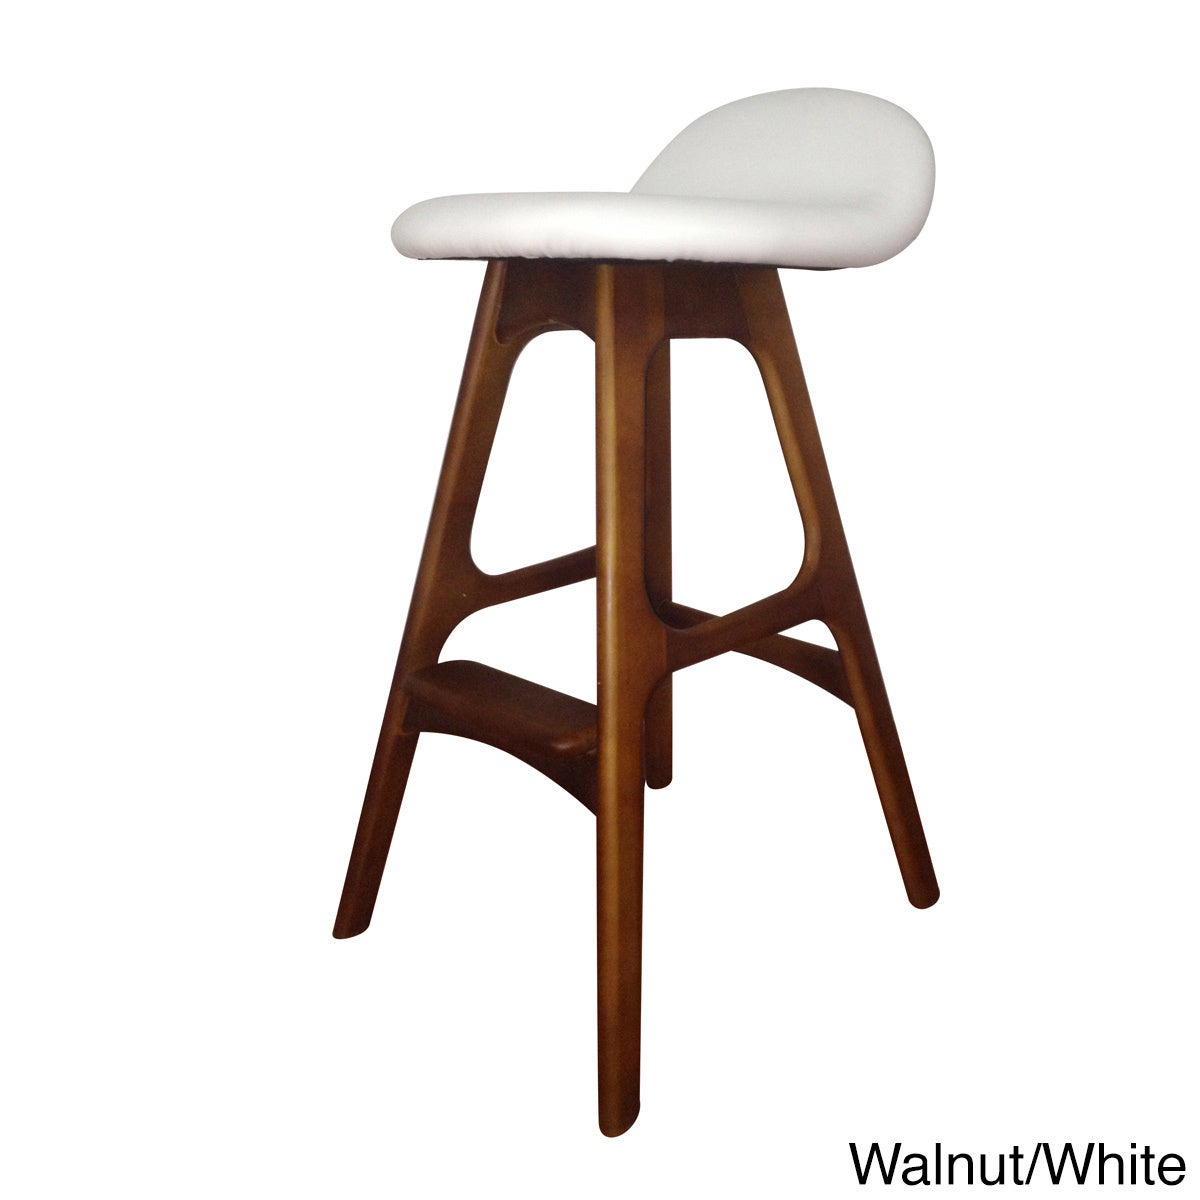 Mid Century Style Bar Stool Overstock Shopping Great